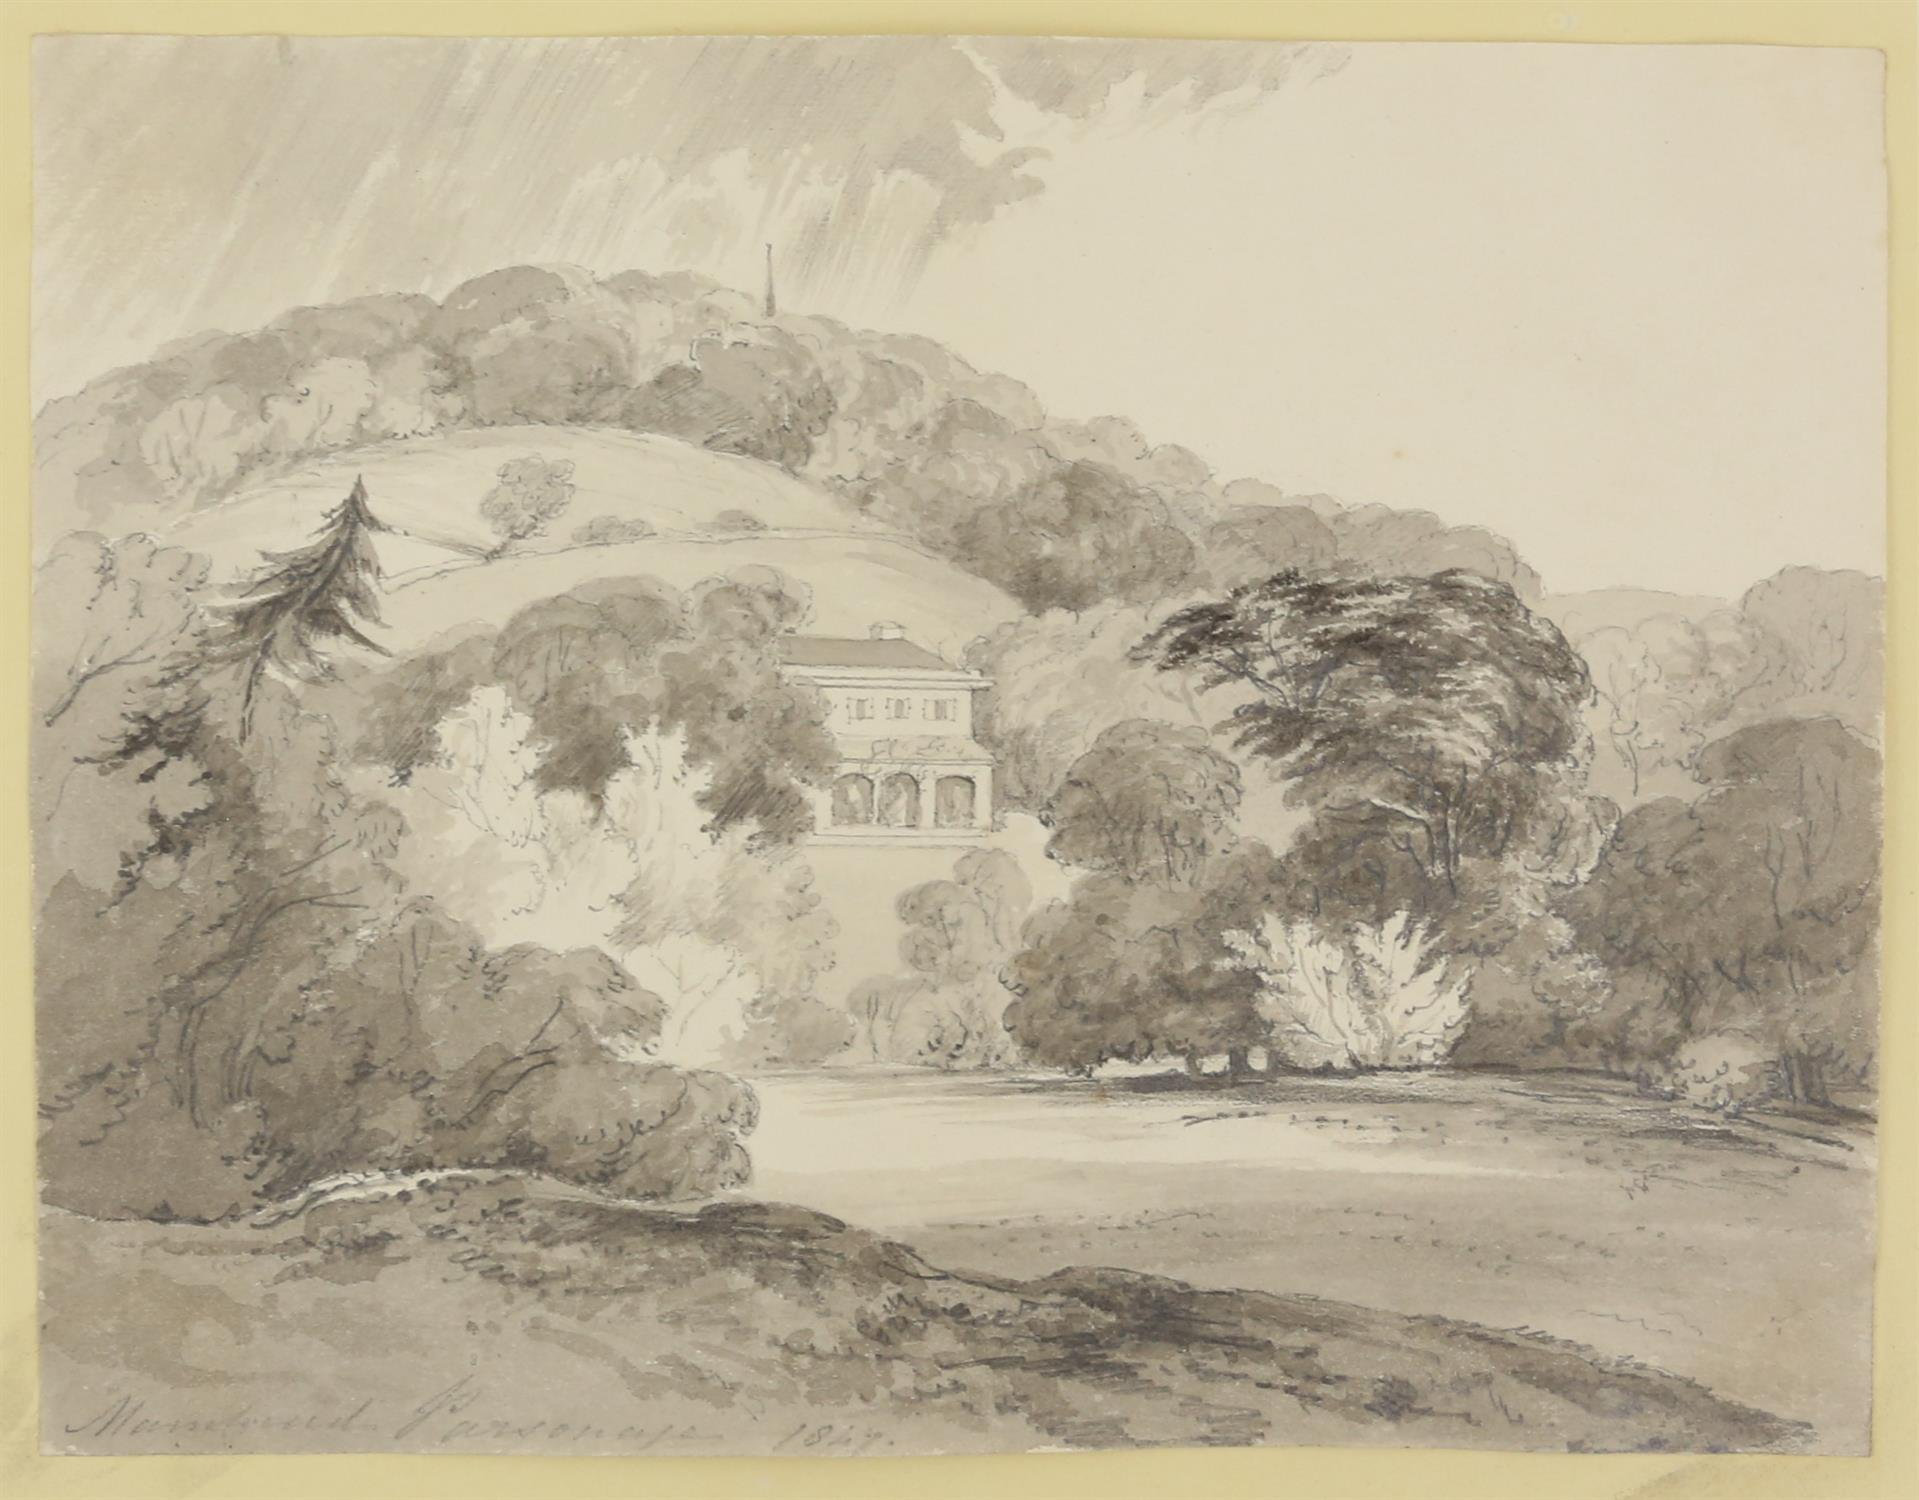 19th century scene with a castle and figures before the moat, sepia wash, 9.5cm x 15. - Image 2 of 8